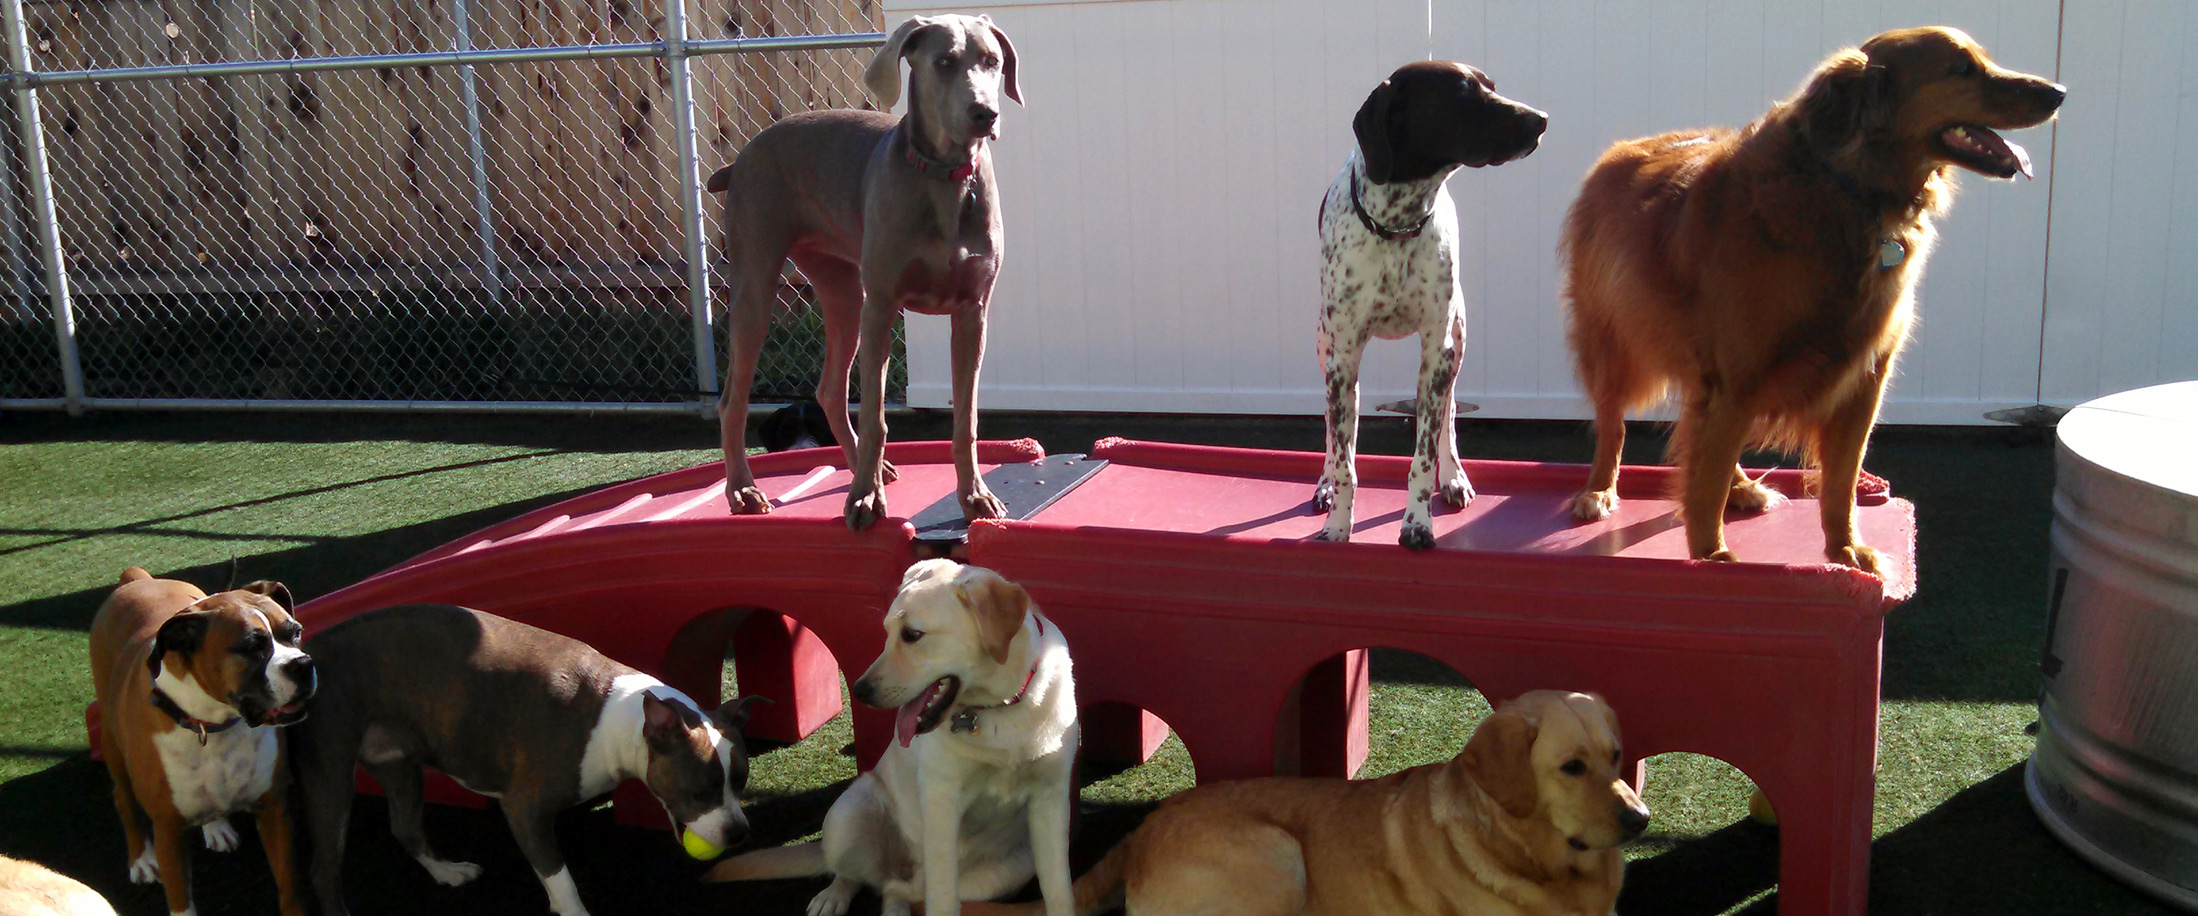 Kennels for Cats & Dogs, Pet Boarding, Daycare: Boise, ID